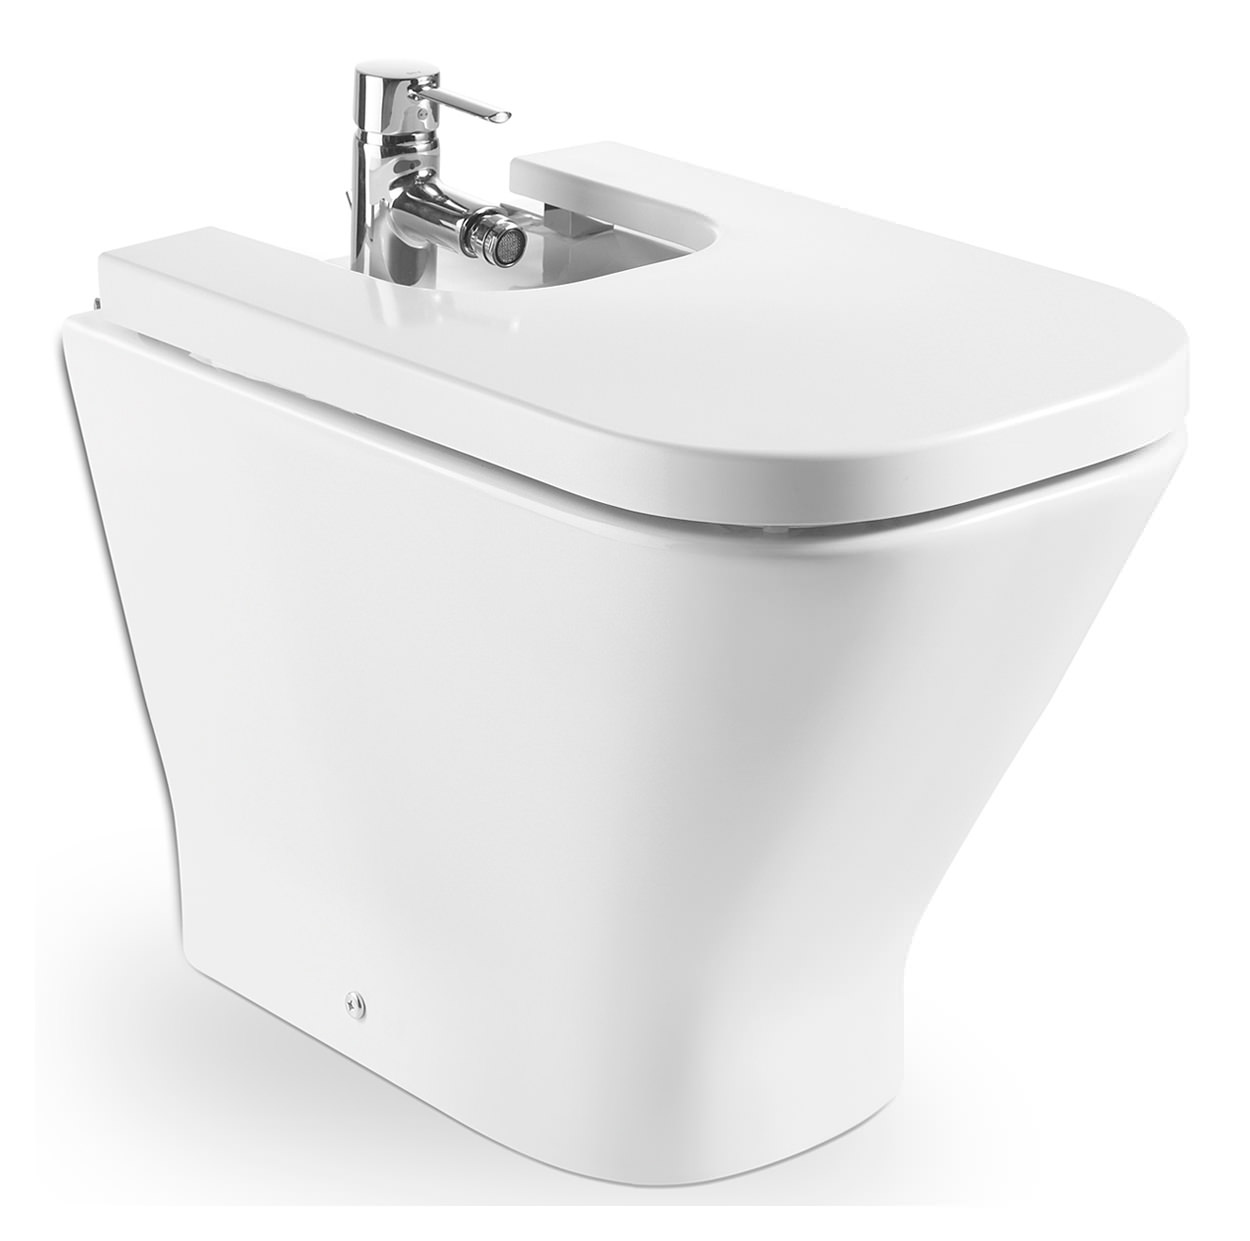 Roca The Gap Moulded Floor Standing Bidet 540mm 357477000